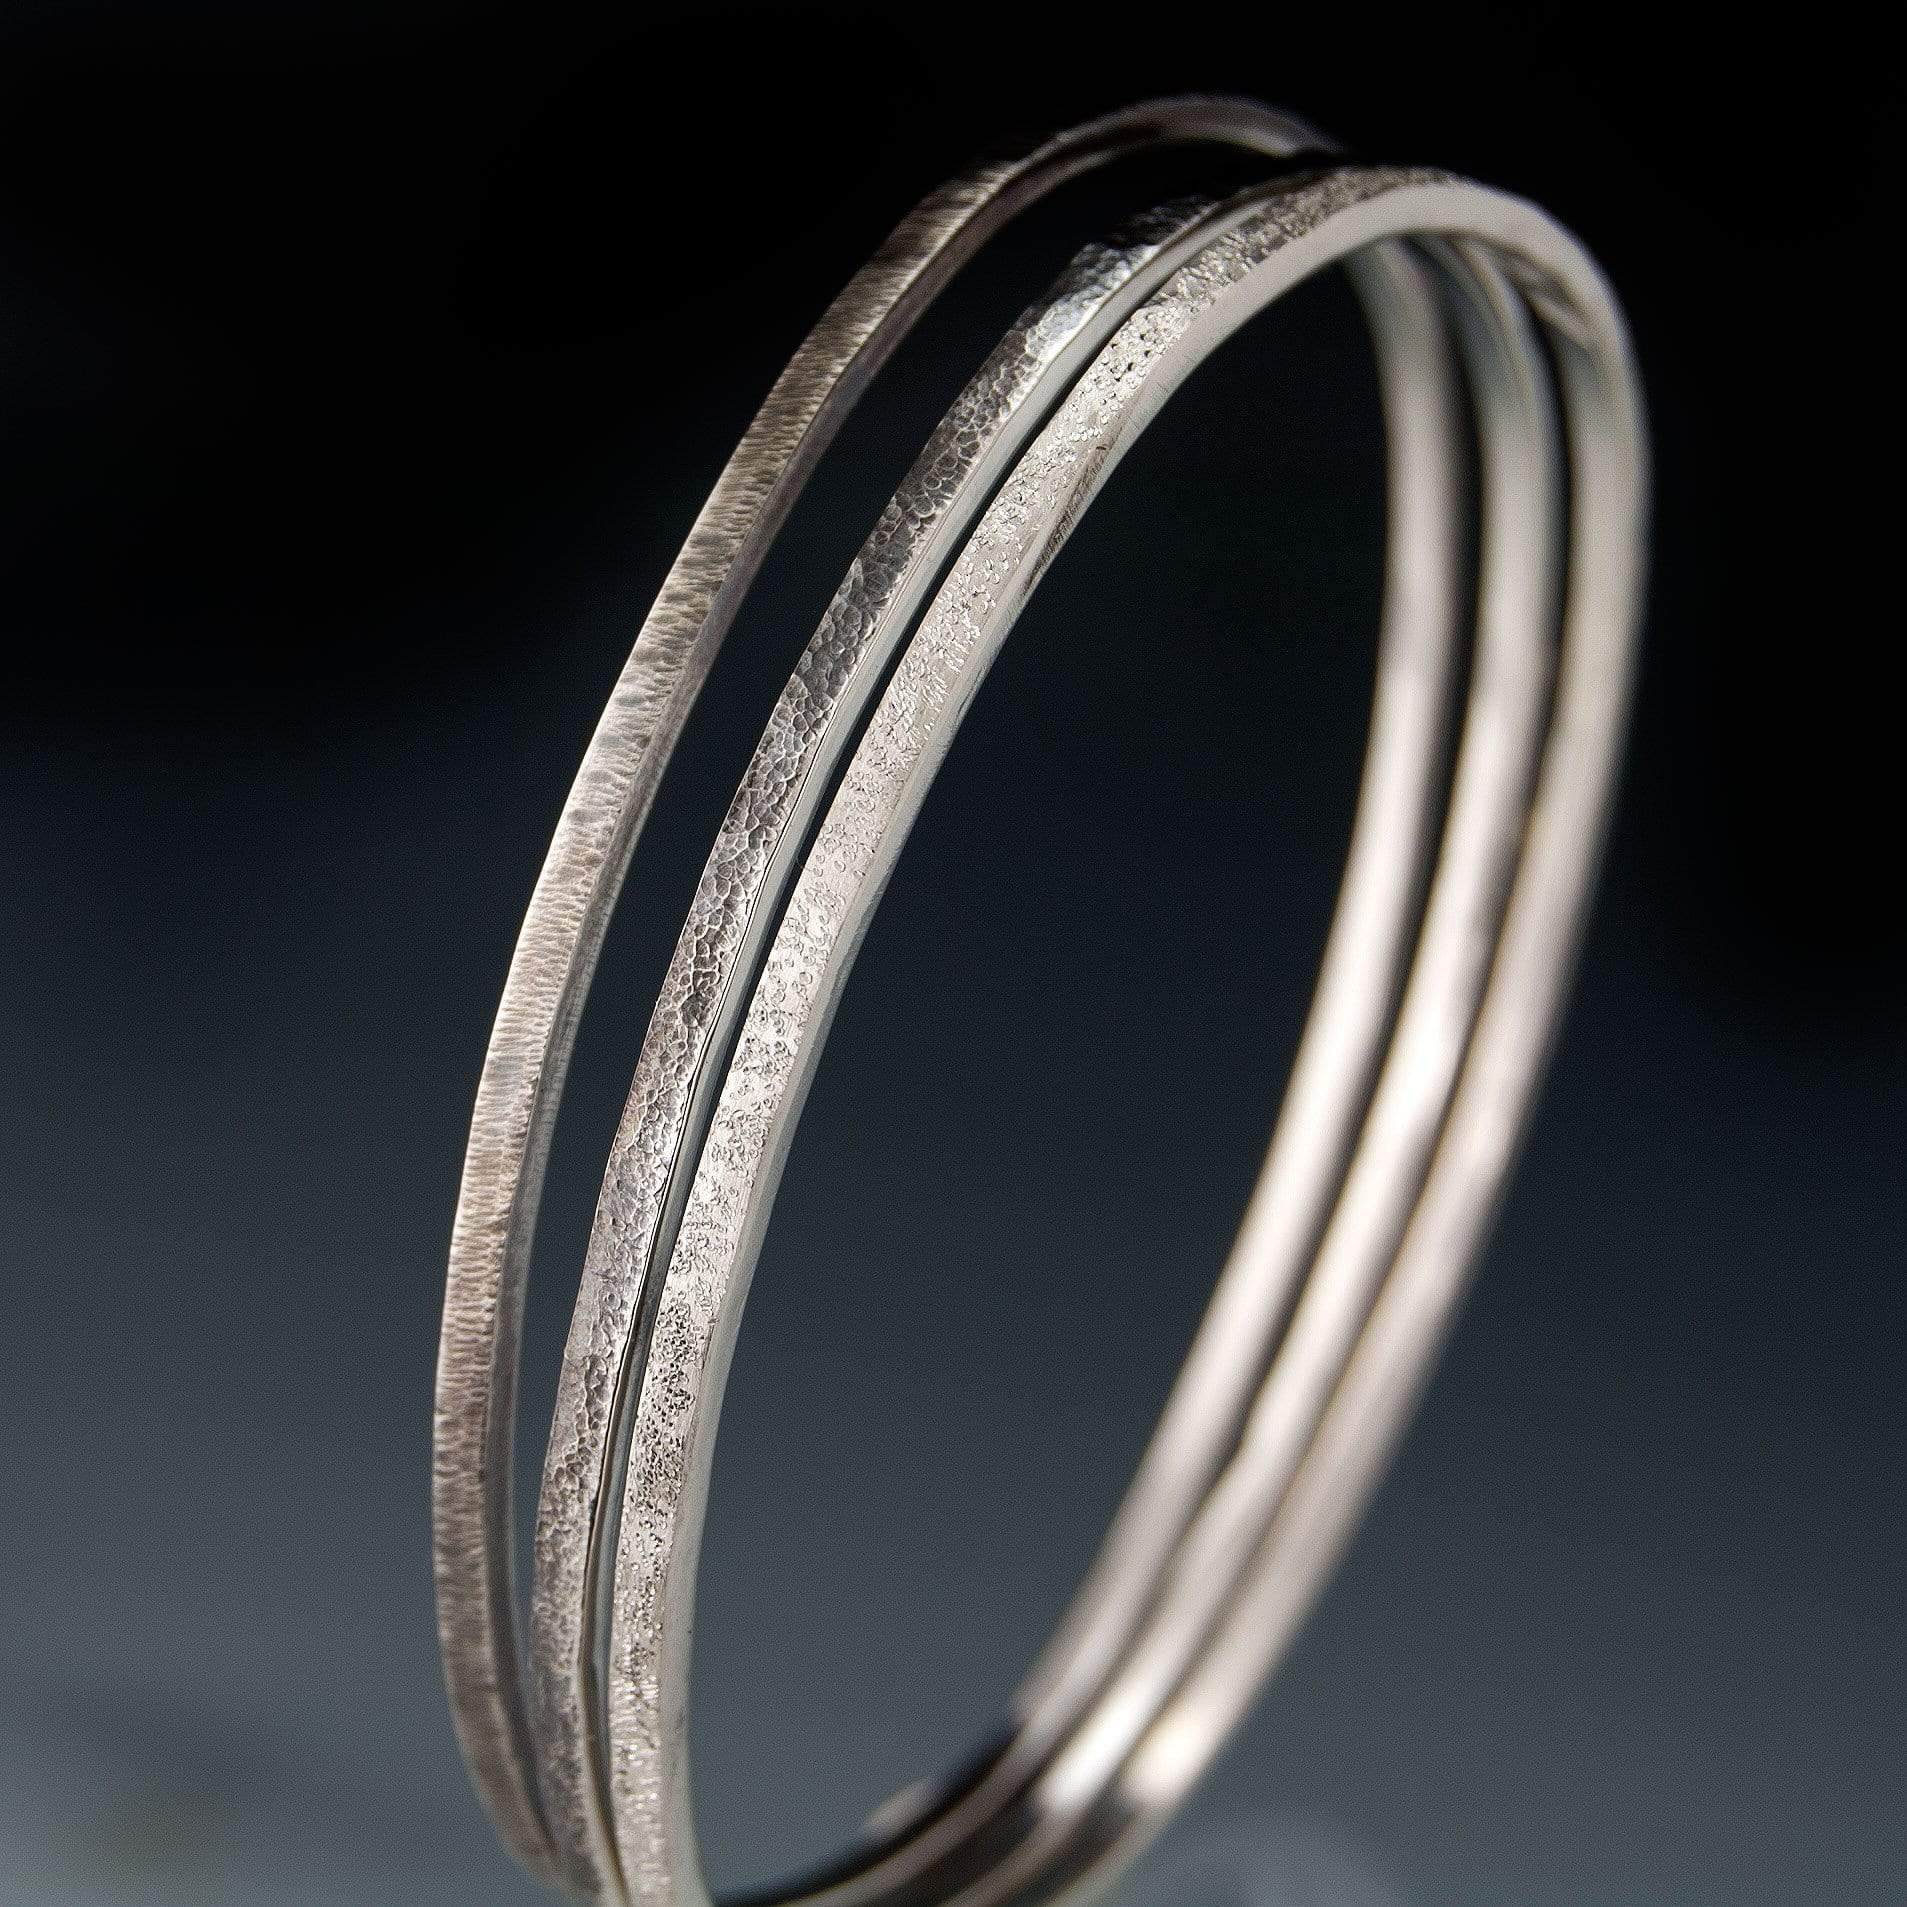 Set of 3 Thin HammerTextured Sterling Silver Bracelets